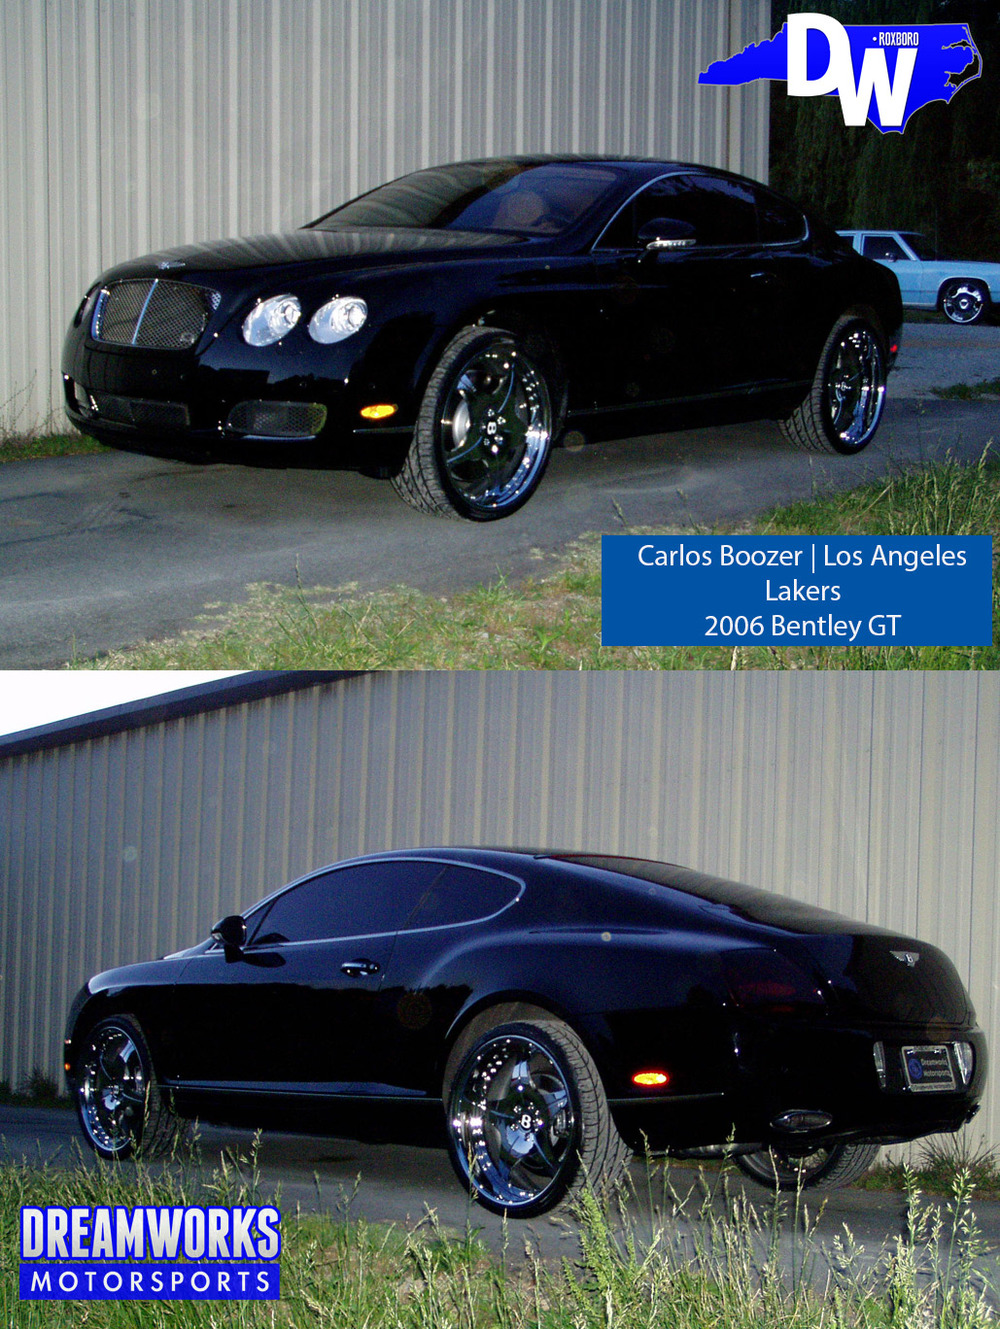 Carlos-boozer-bentley.jpg